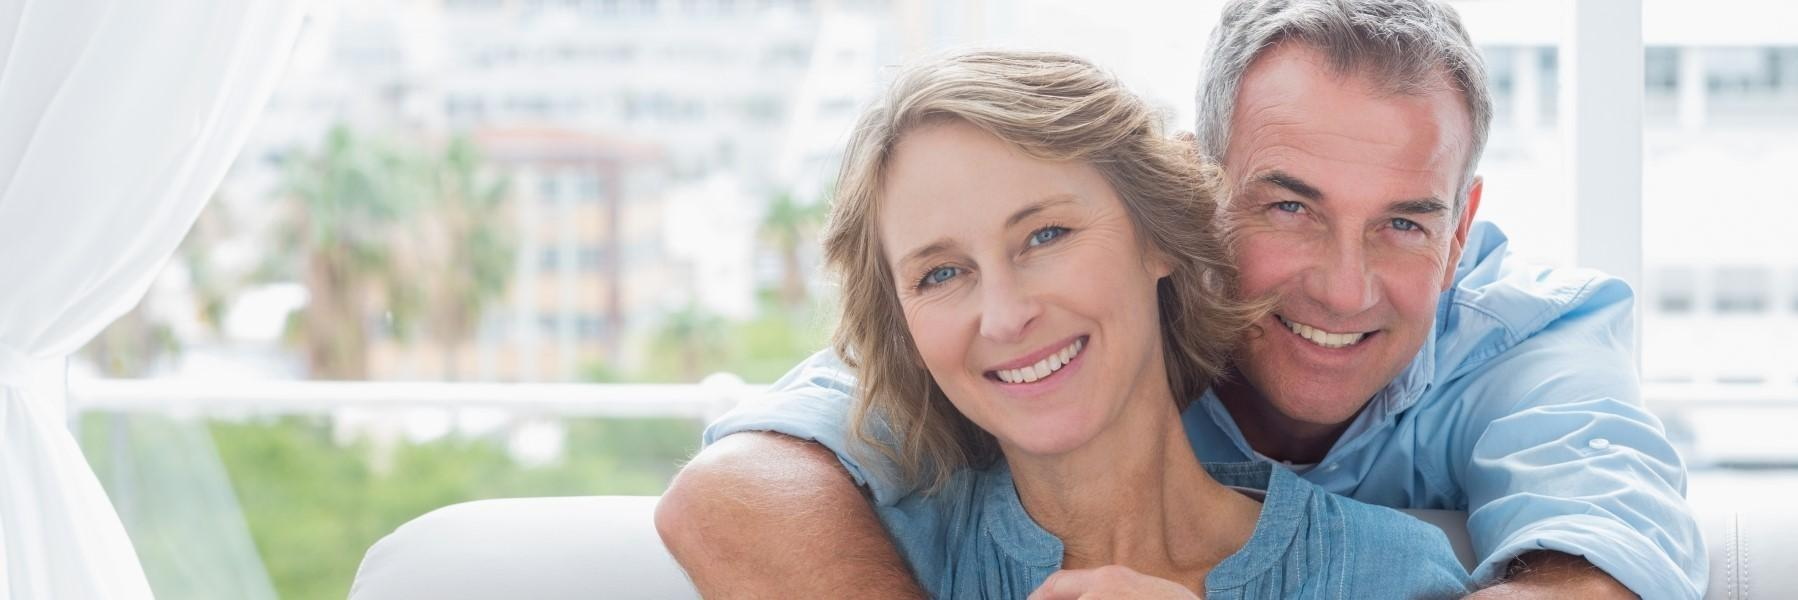 Couple | Periodontal Disease Treatment Annapolis MD